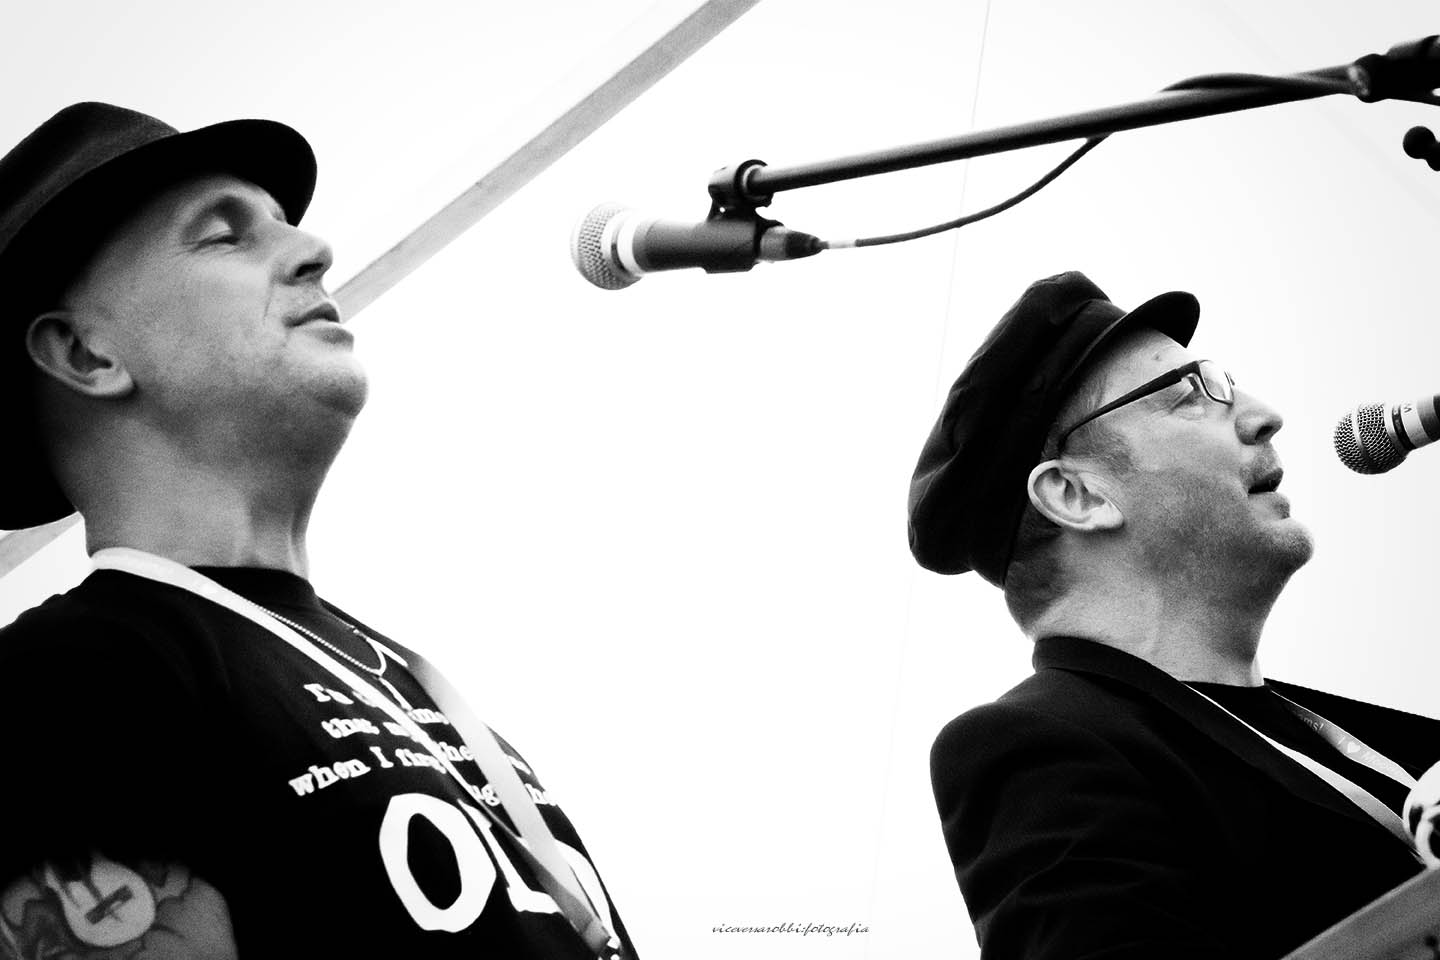 Glover (left) and Priestman perform. Photo by viceversarobbi fotografia